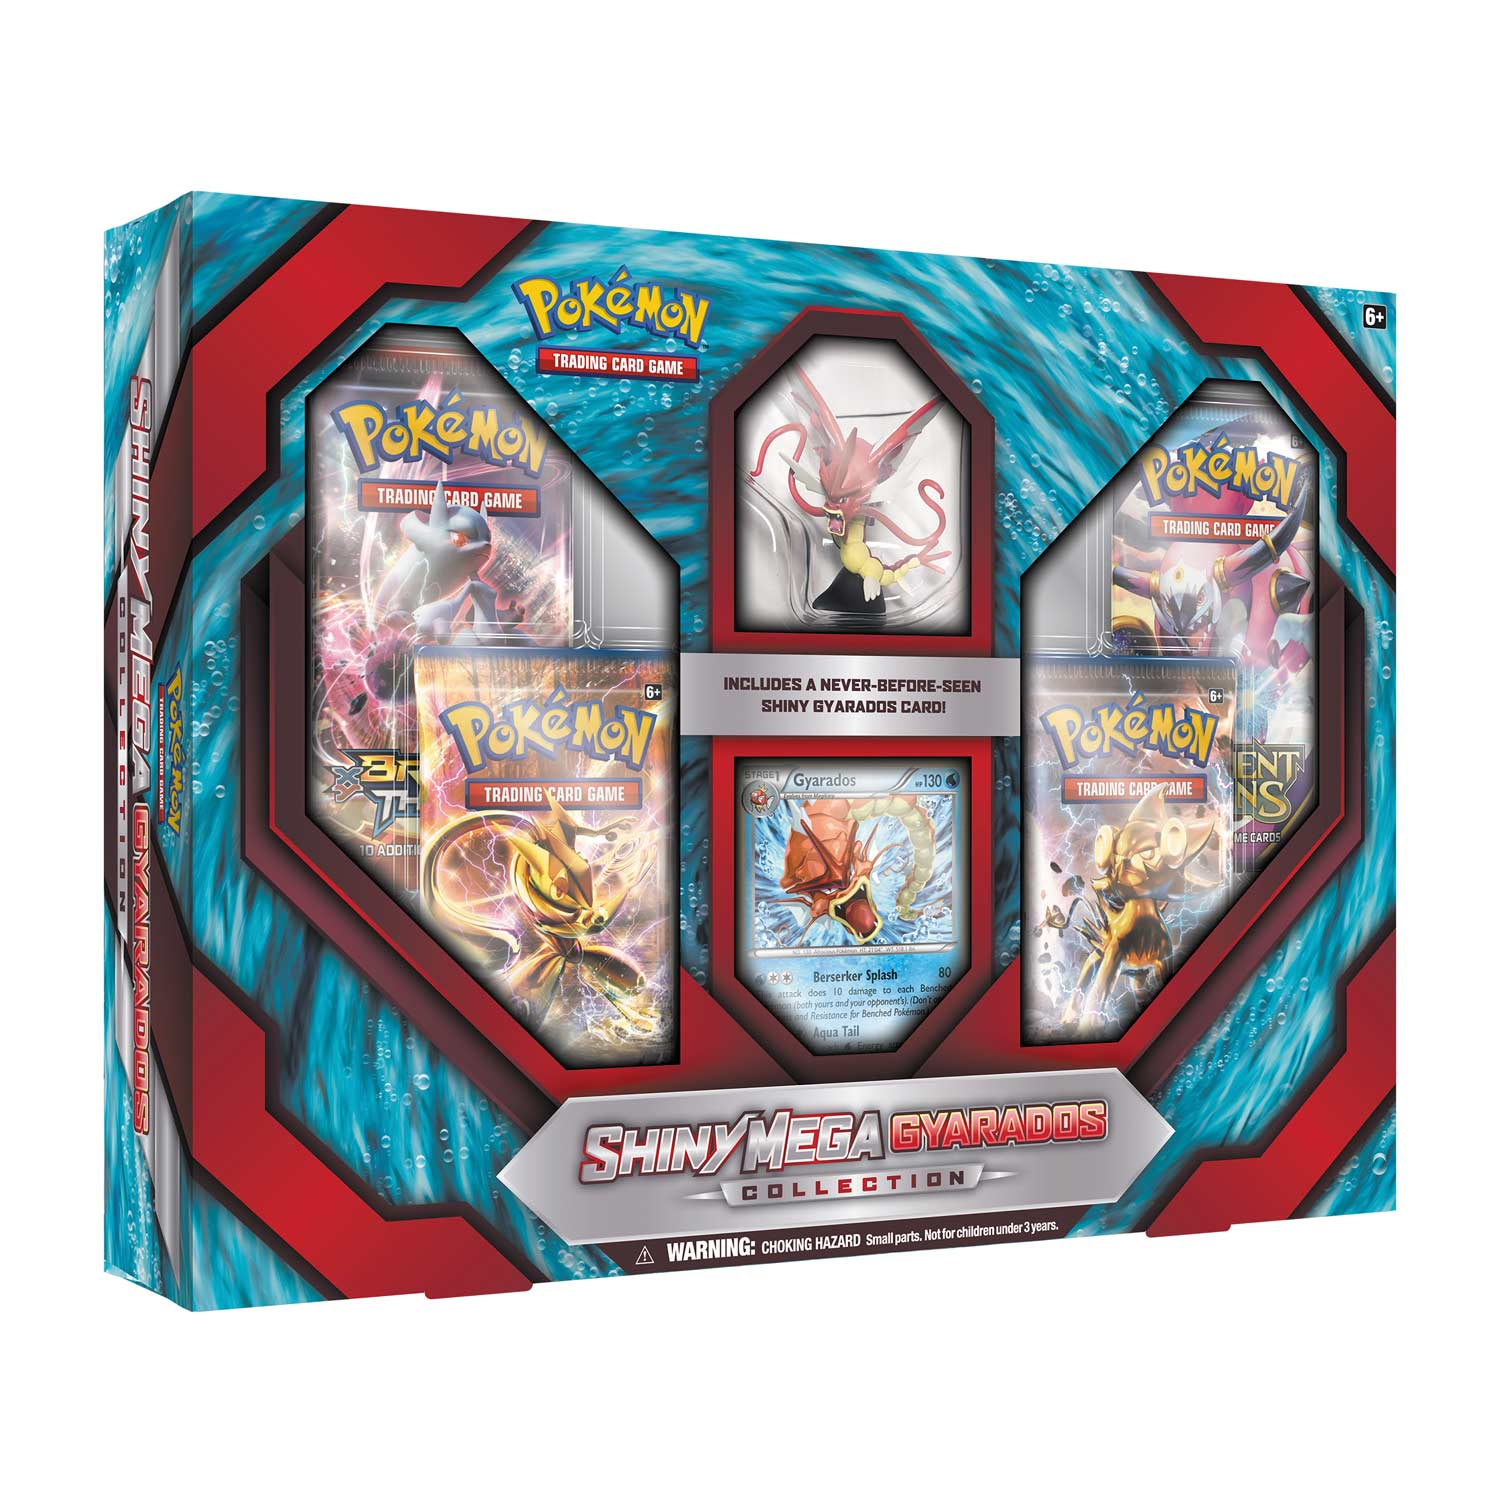 Toys For Cards : Shiny mega gyarados collection pokémon figure promo